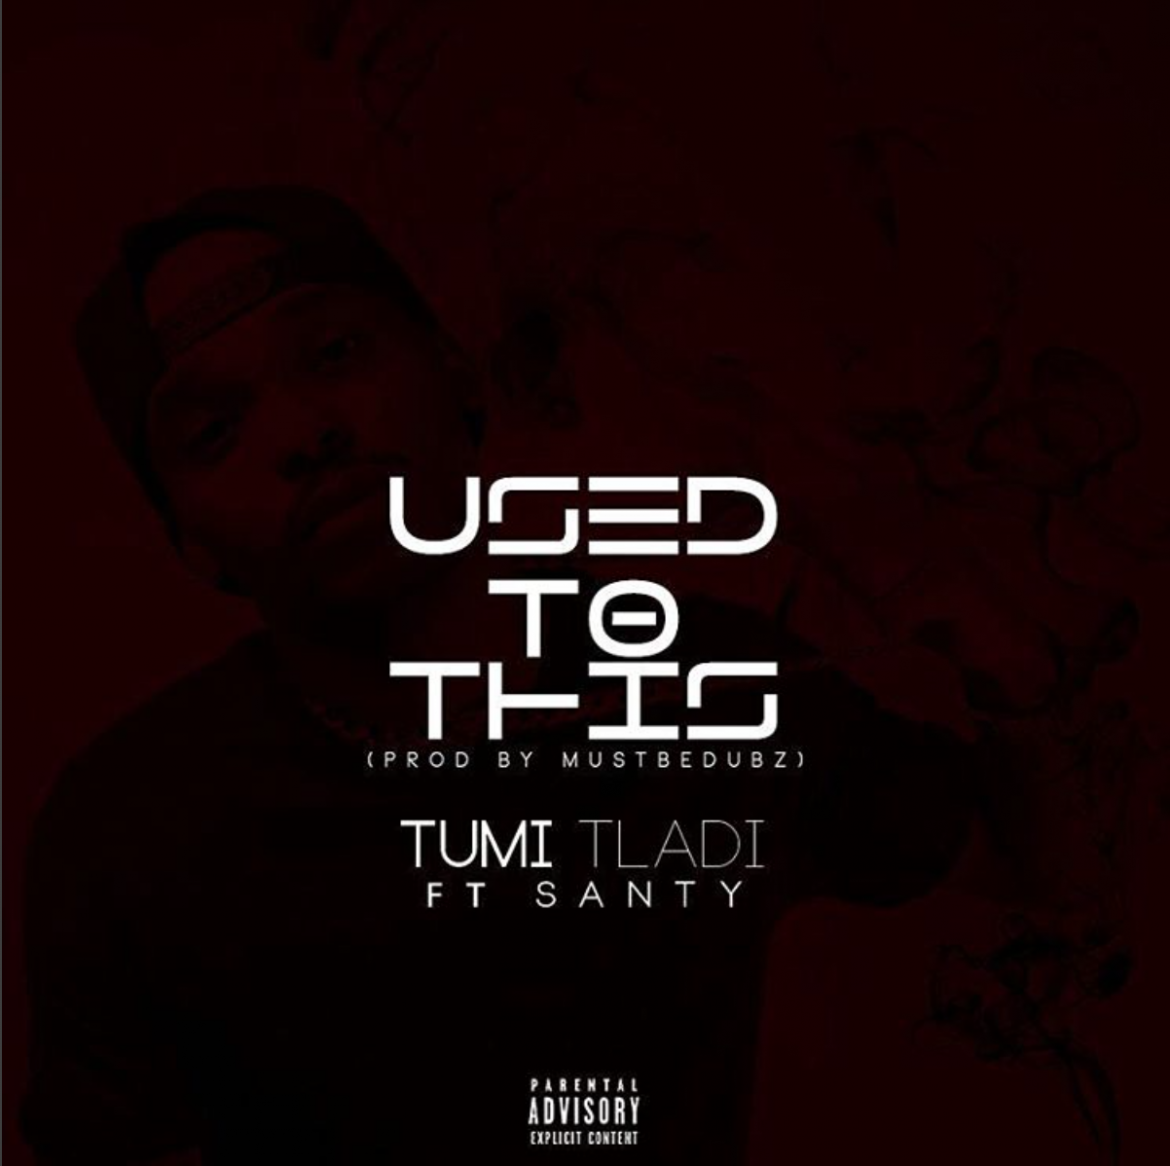 Tumi Tladi ft Santy – Used To This